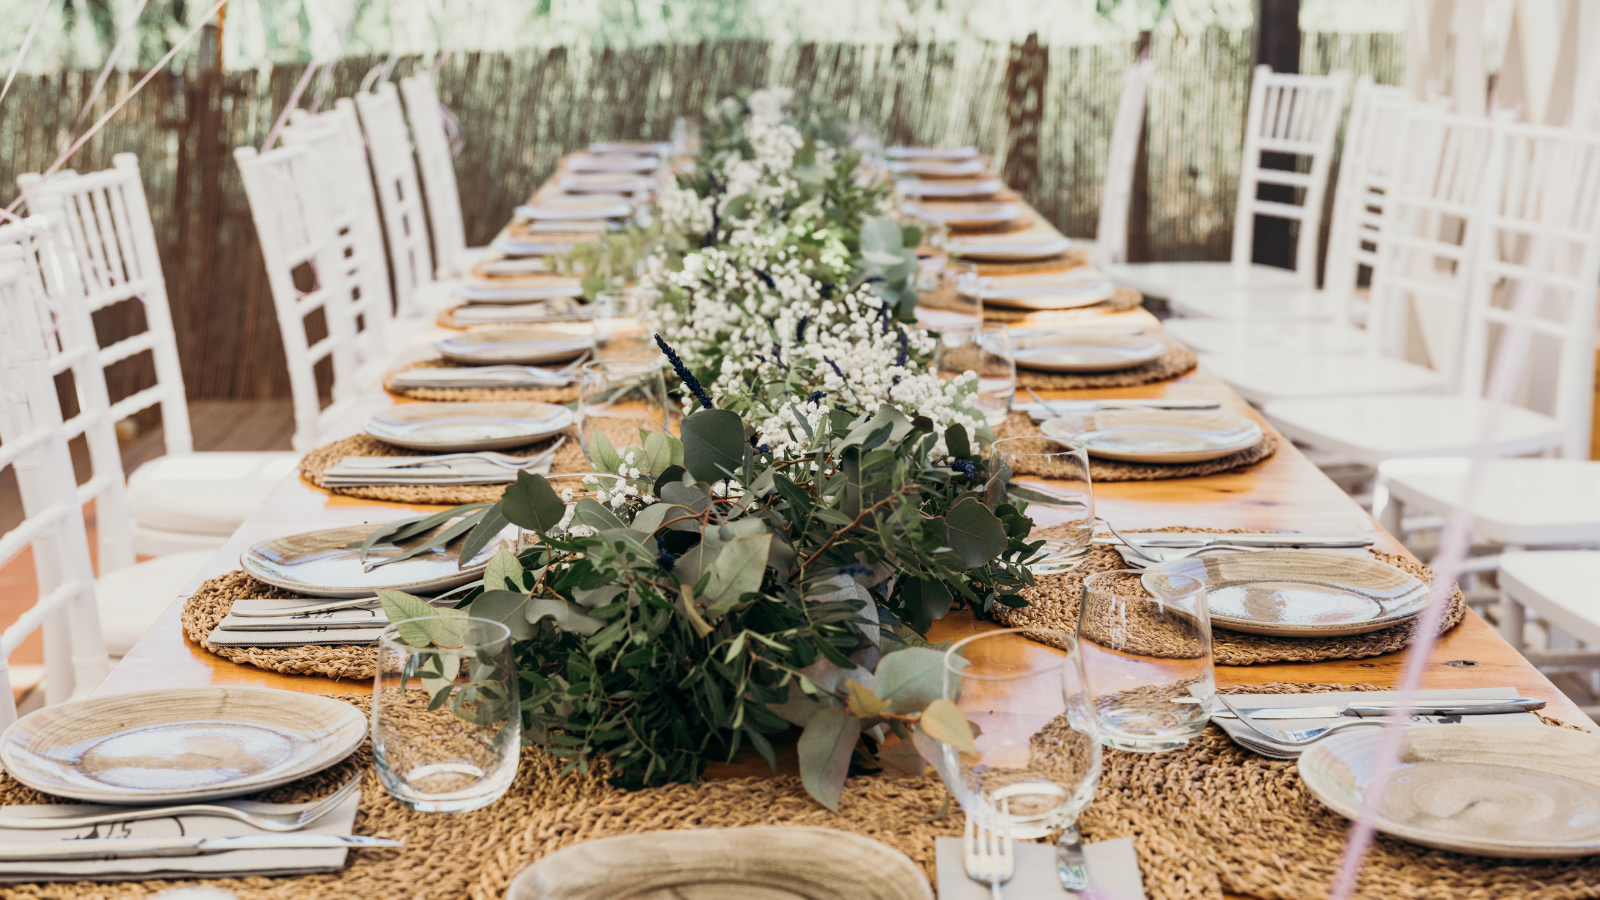 wedding reception table setup with silverware and china